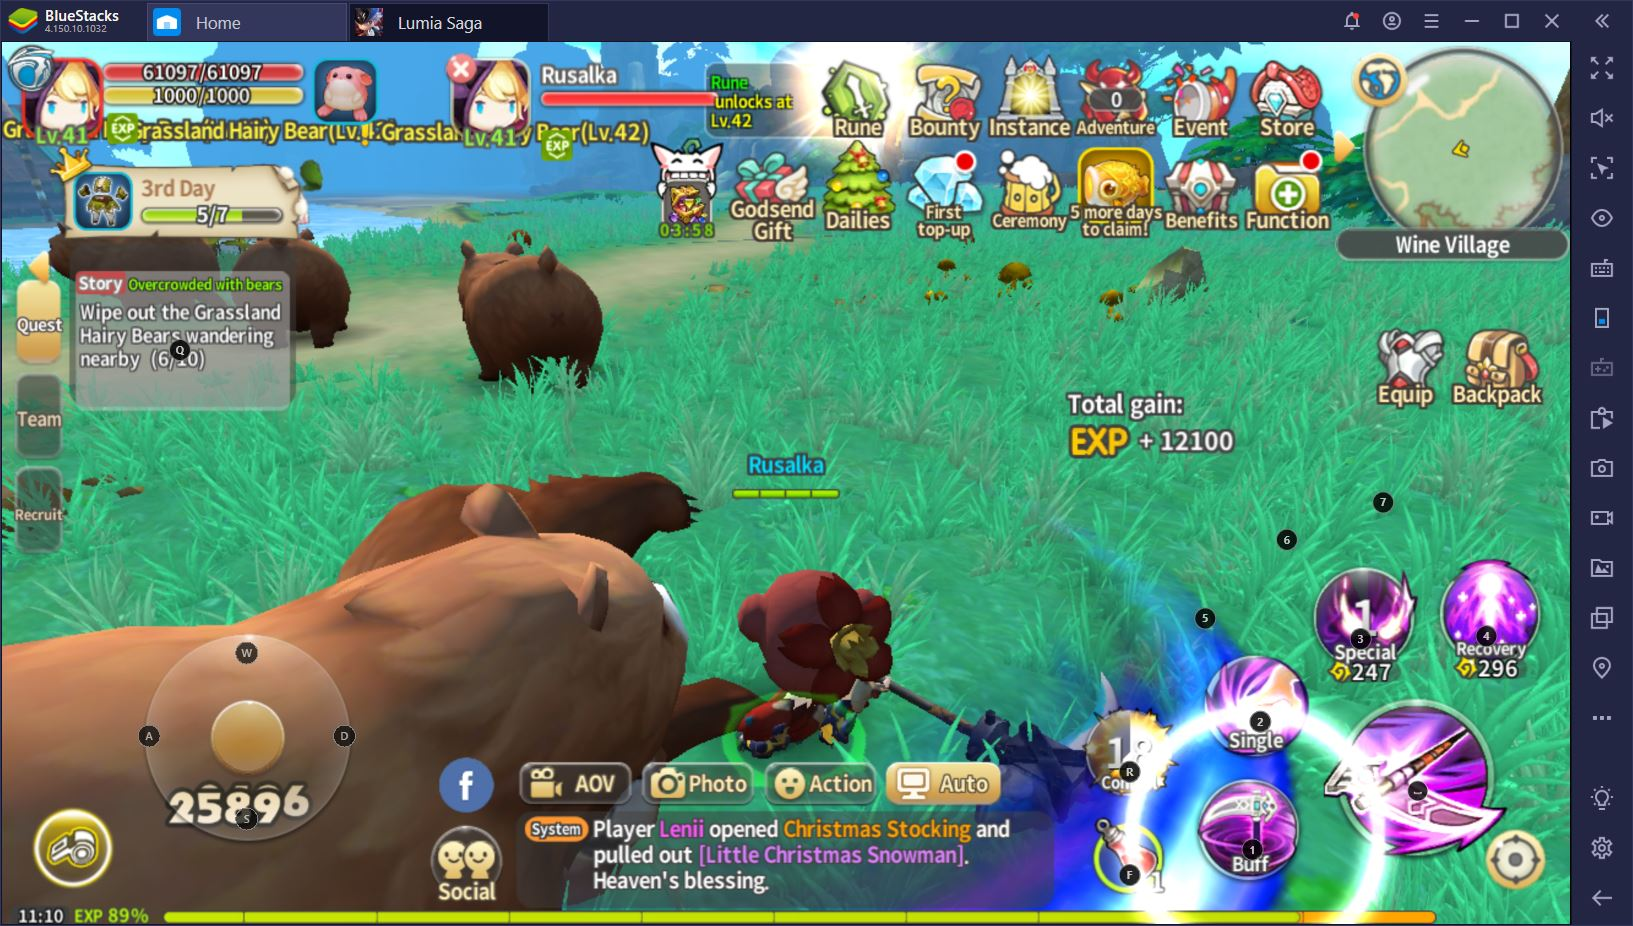 Play Lumia Saga on PC with BlueStacks